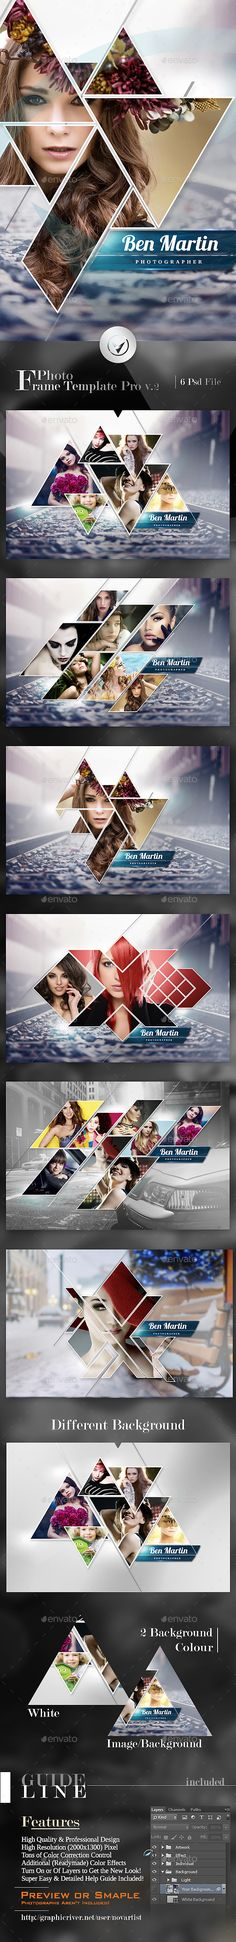 Photo Frame Template Pro #photography #psd Download: http://graphicriver.net/item/photo-frame-template-pro-v2/13207696?ref=ksioks